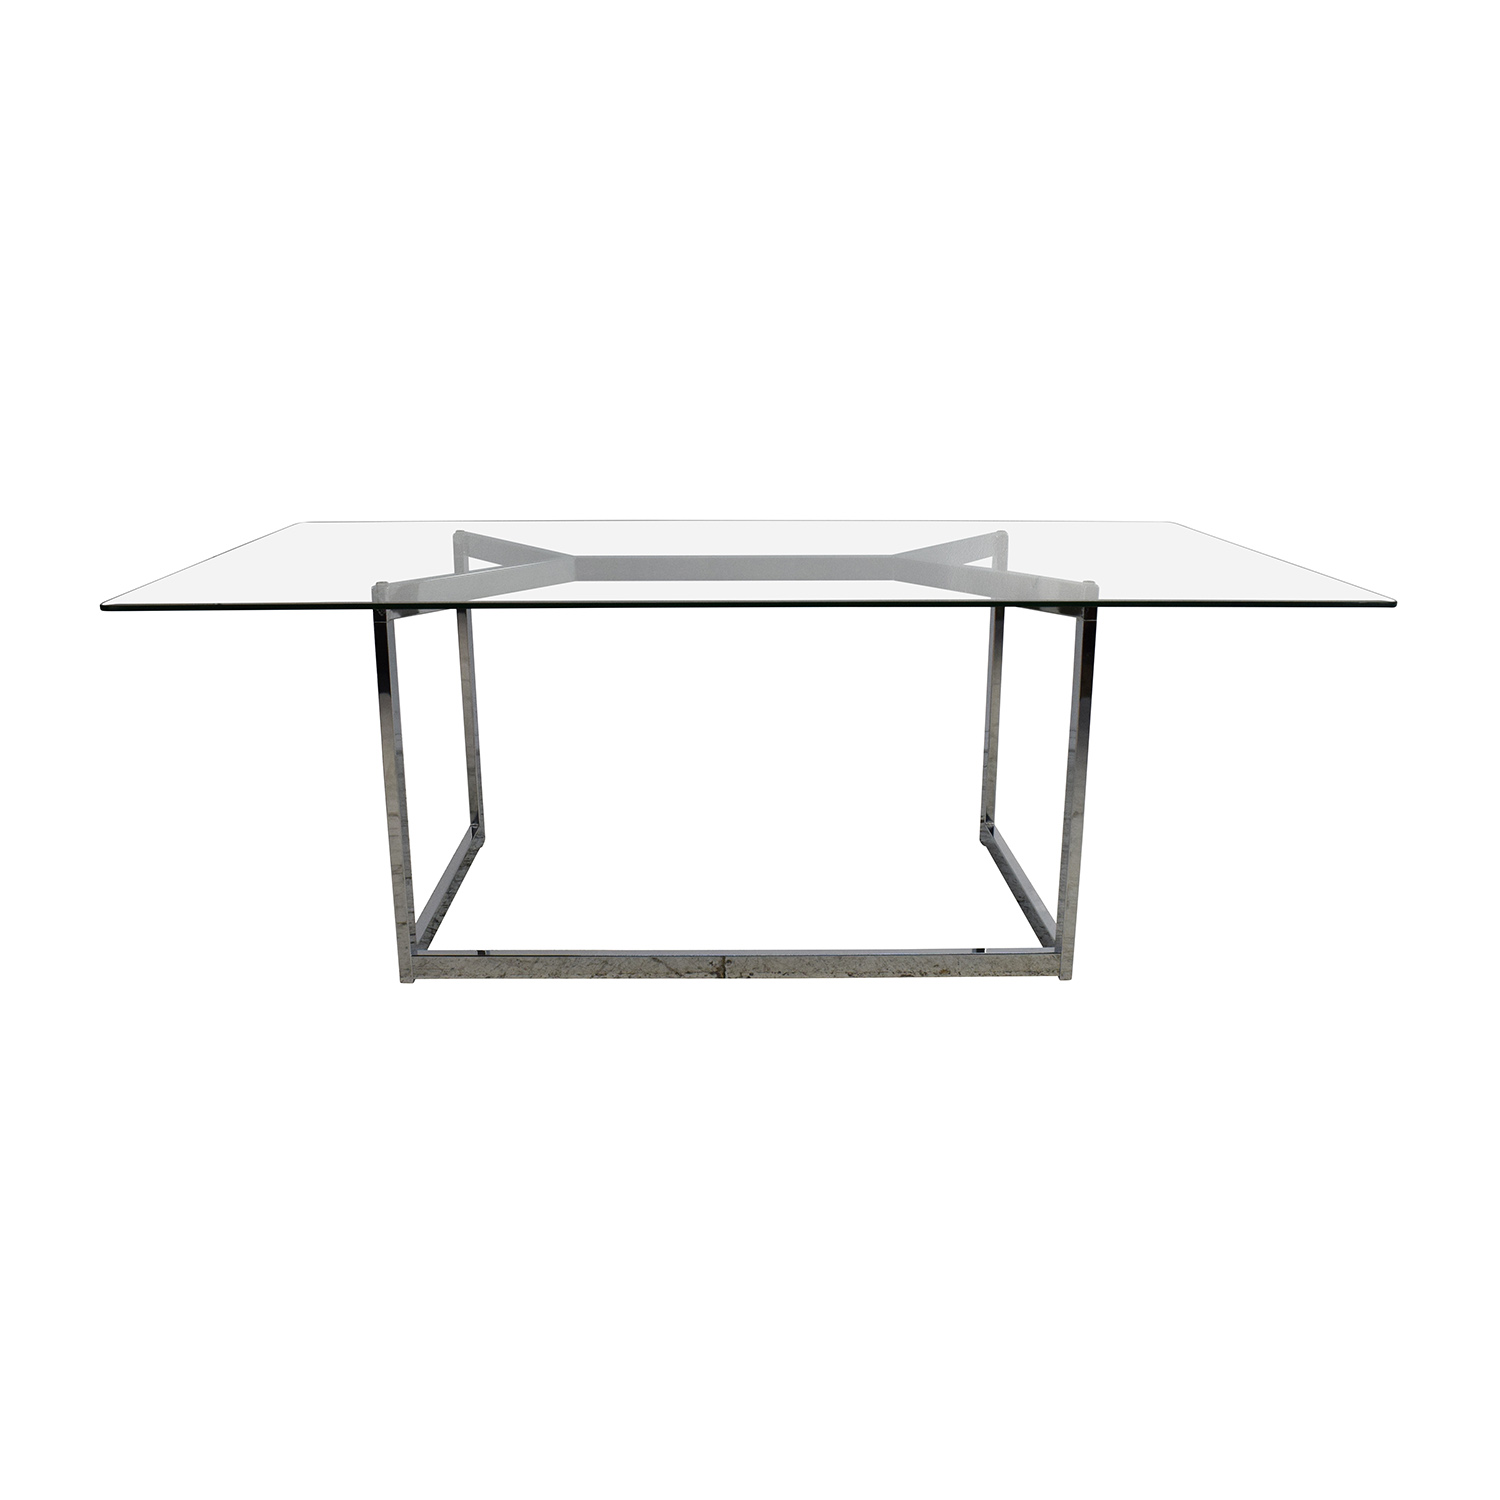 shop CB2 CB2 Tesso Chrome and Glass Dining Table online